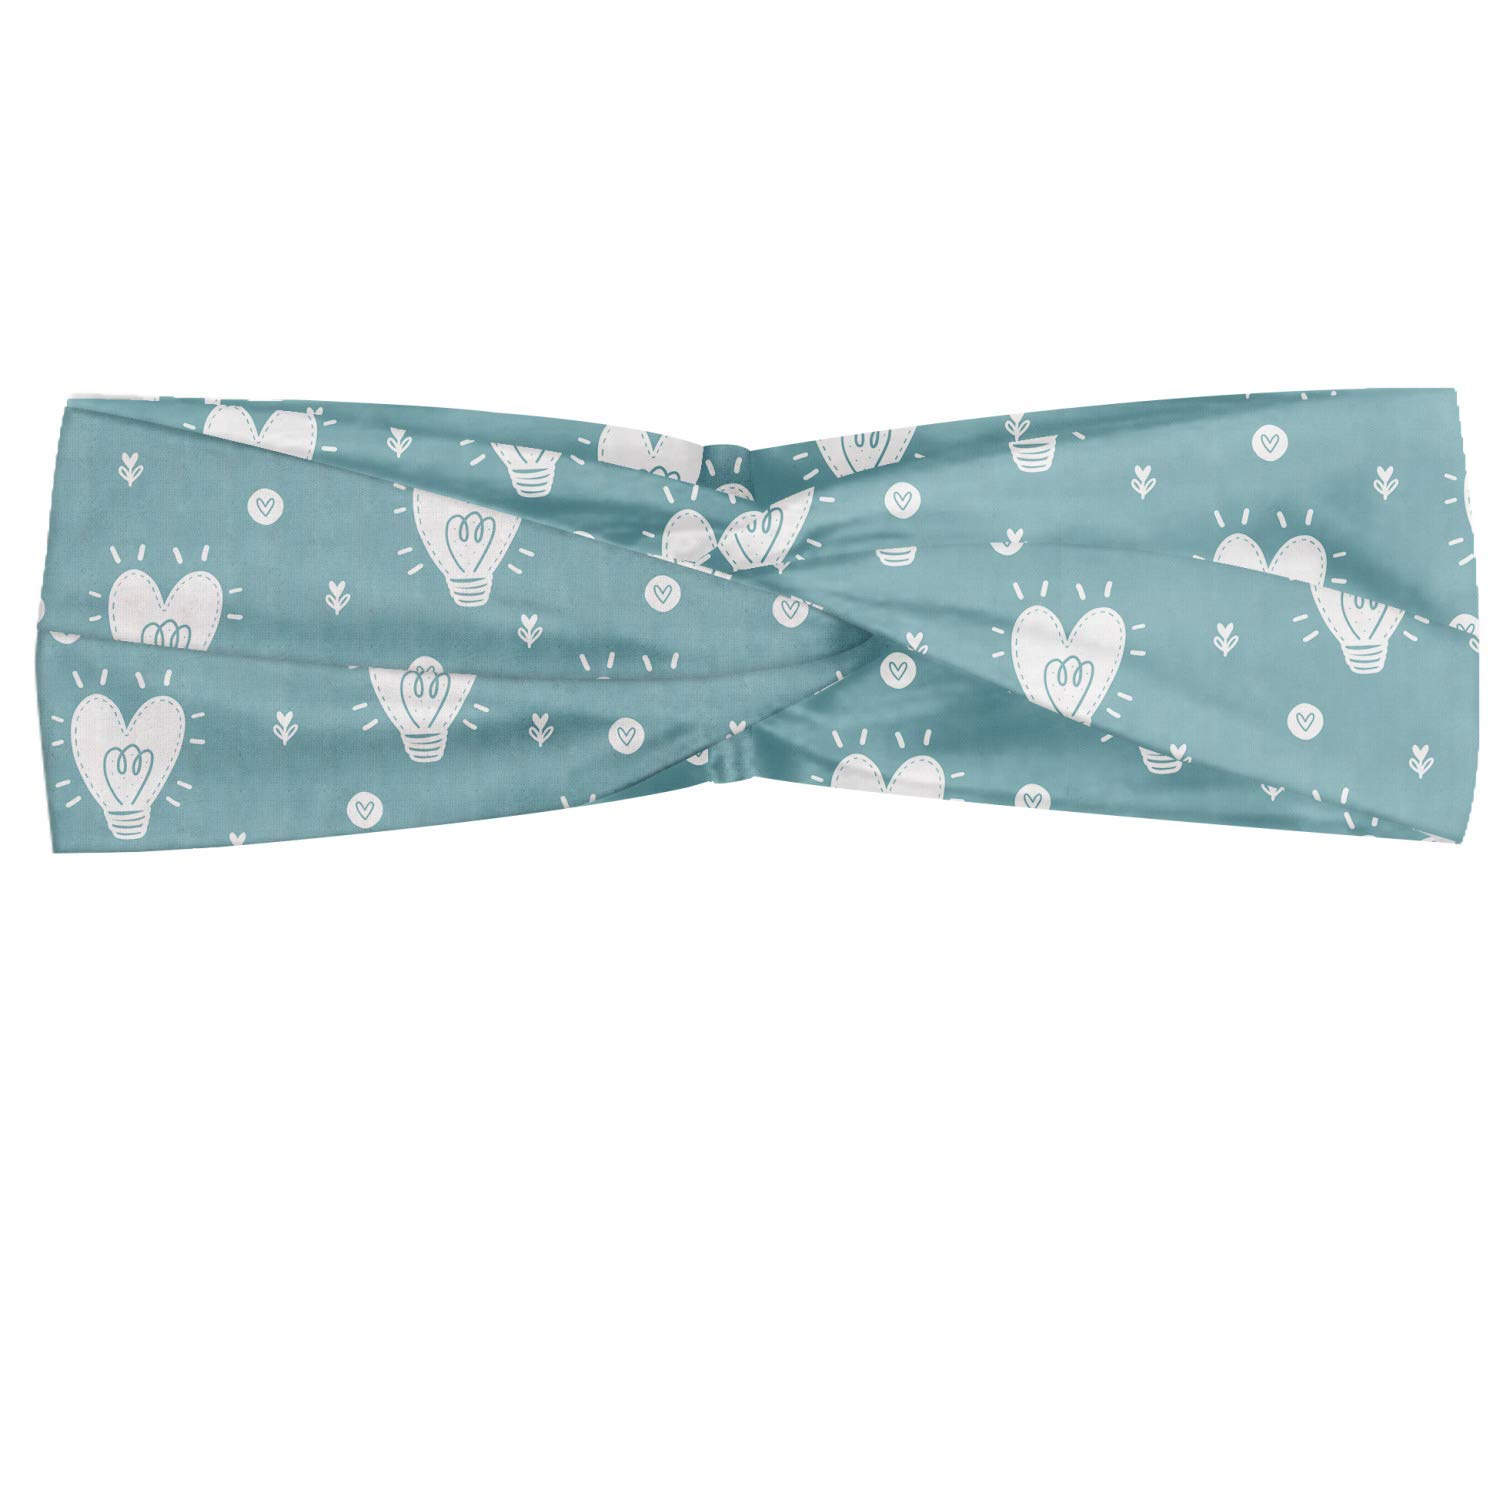 Ambesonne Scandinavian Headband, Hearts Valentines Day Idea Illustration with Pastel Blue Background, Elastic and Soft Women's Bandana for Sports and Everyday Use, Pale Blue and White